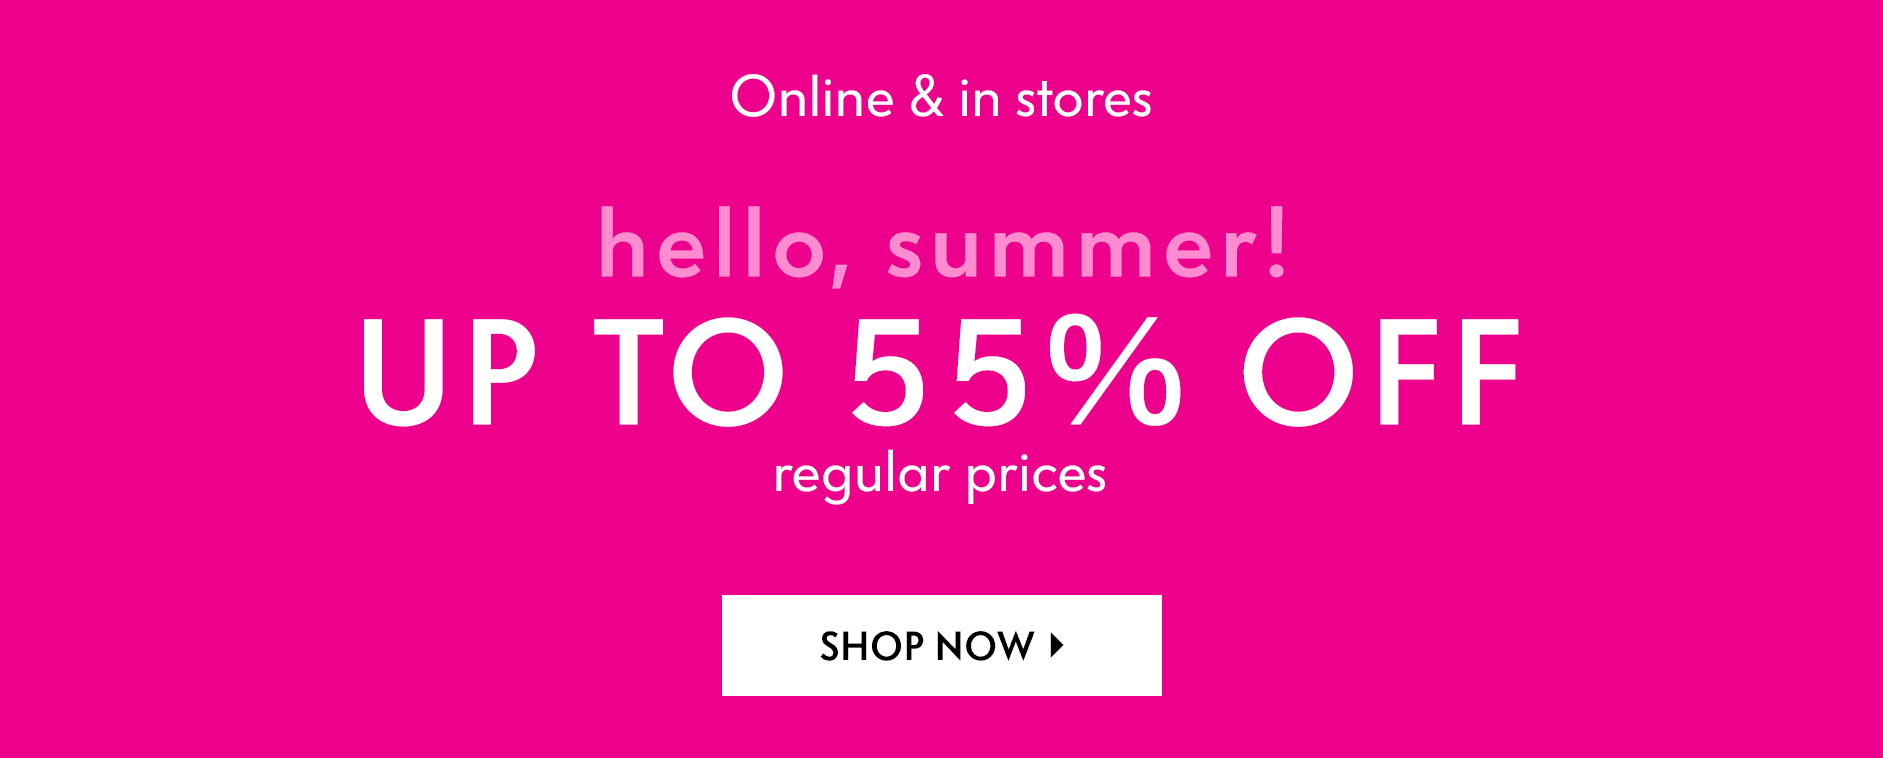 Hello, summer sale! Extra 25% off sale prices